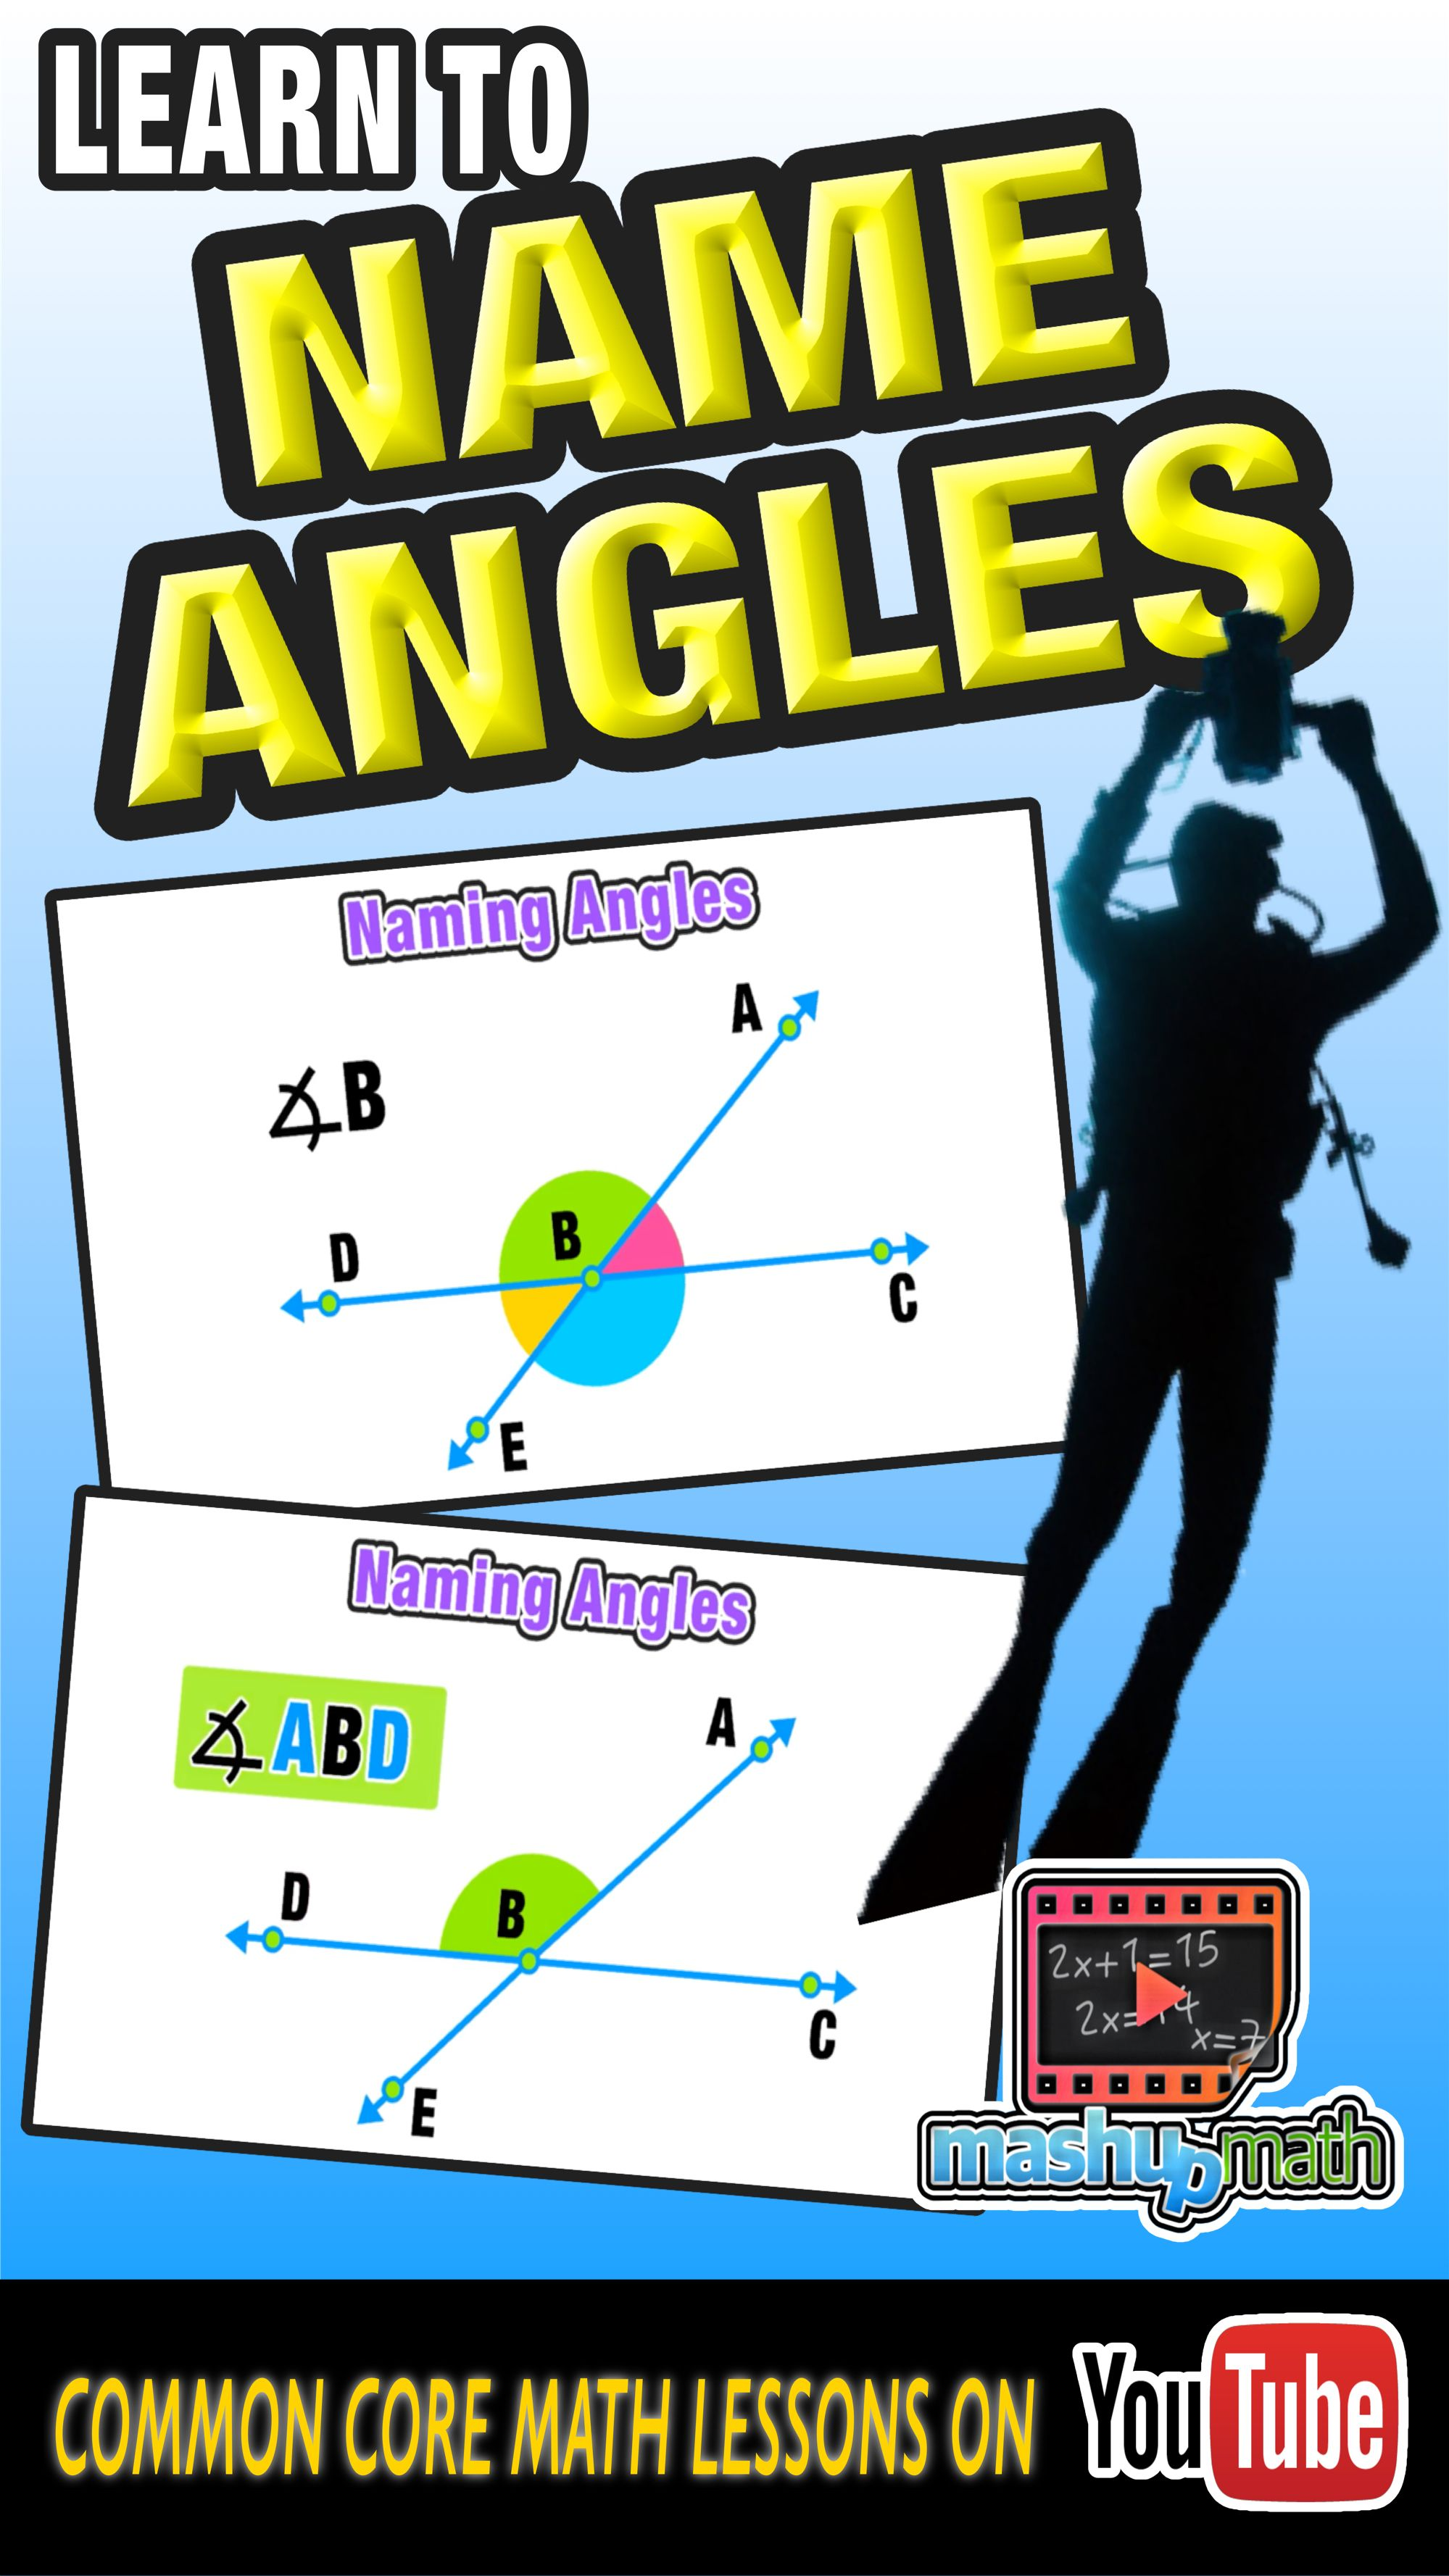 Check Out Our Animated Math Lesson Which Visually Teaches